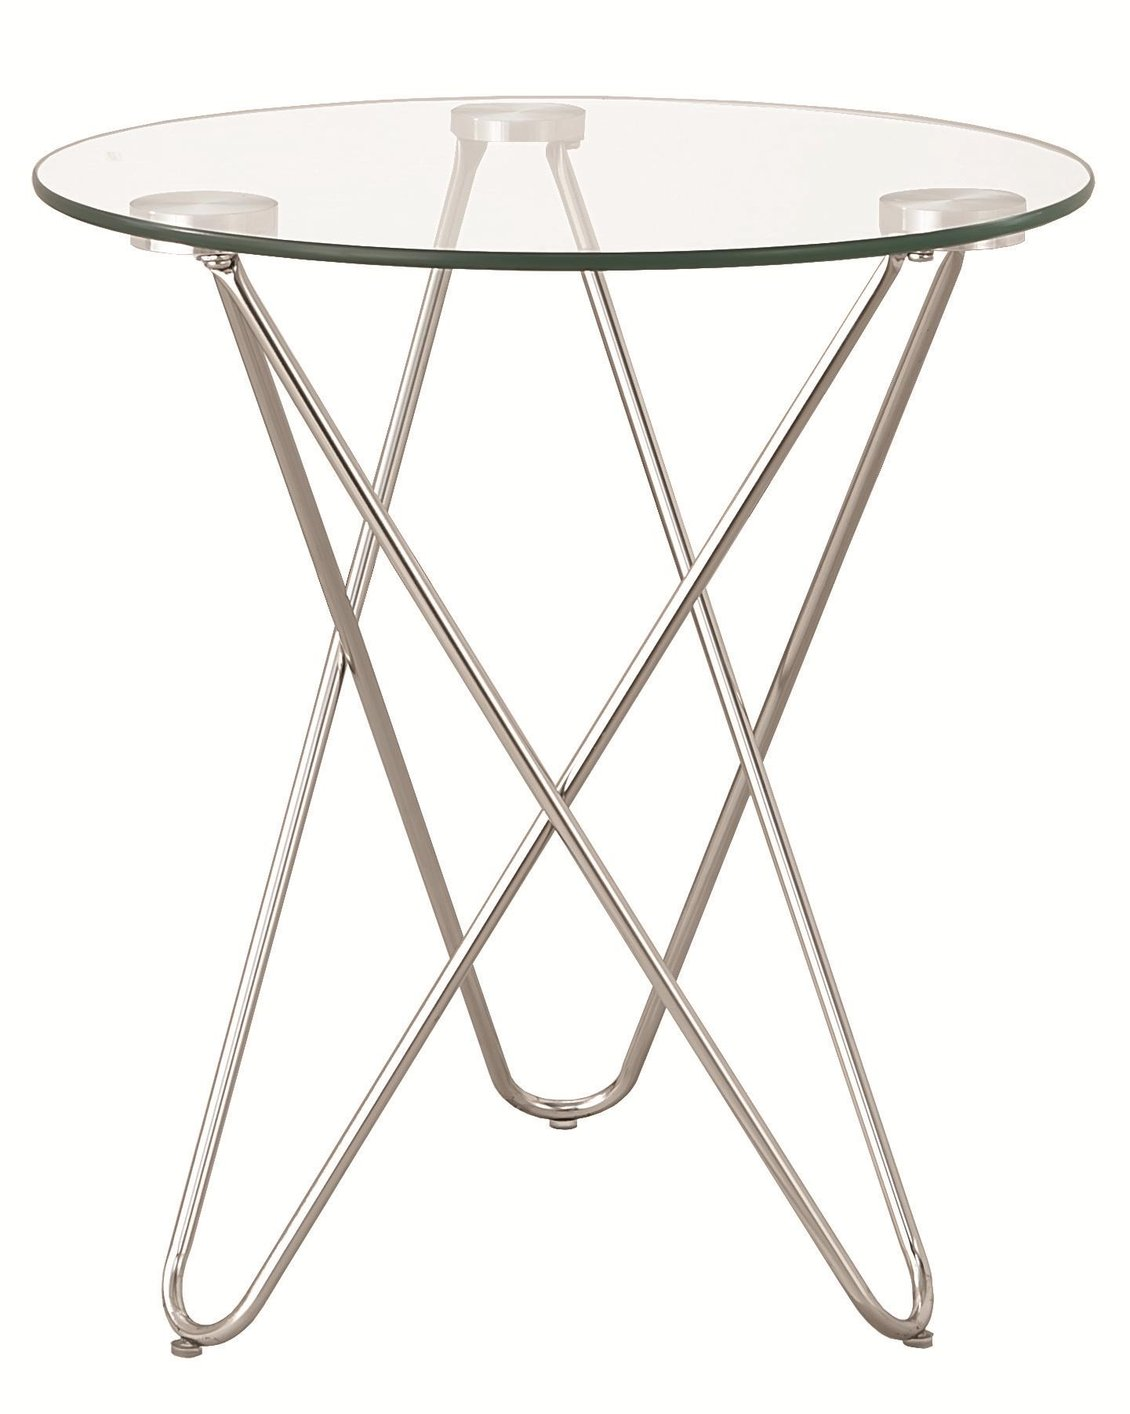 clear metal accent table steal sofa furniture los angeles silver glass black outdoor fred meyer modern side top square patio coffee barn style antique drop leaf kitchen home